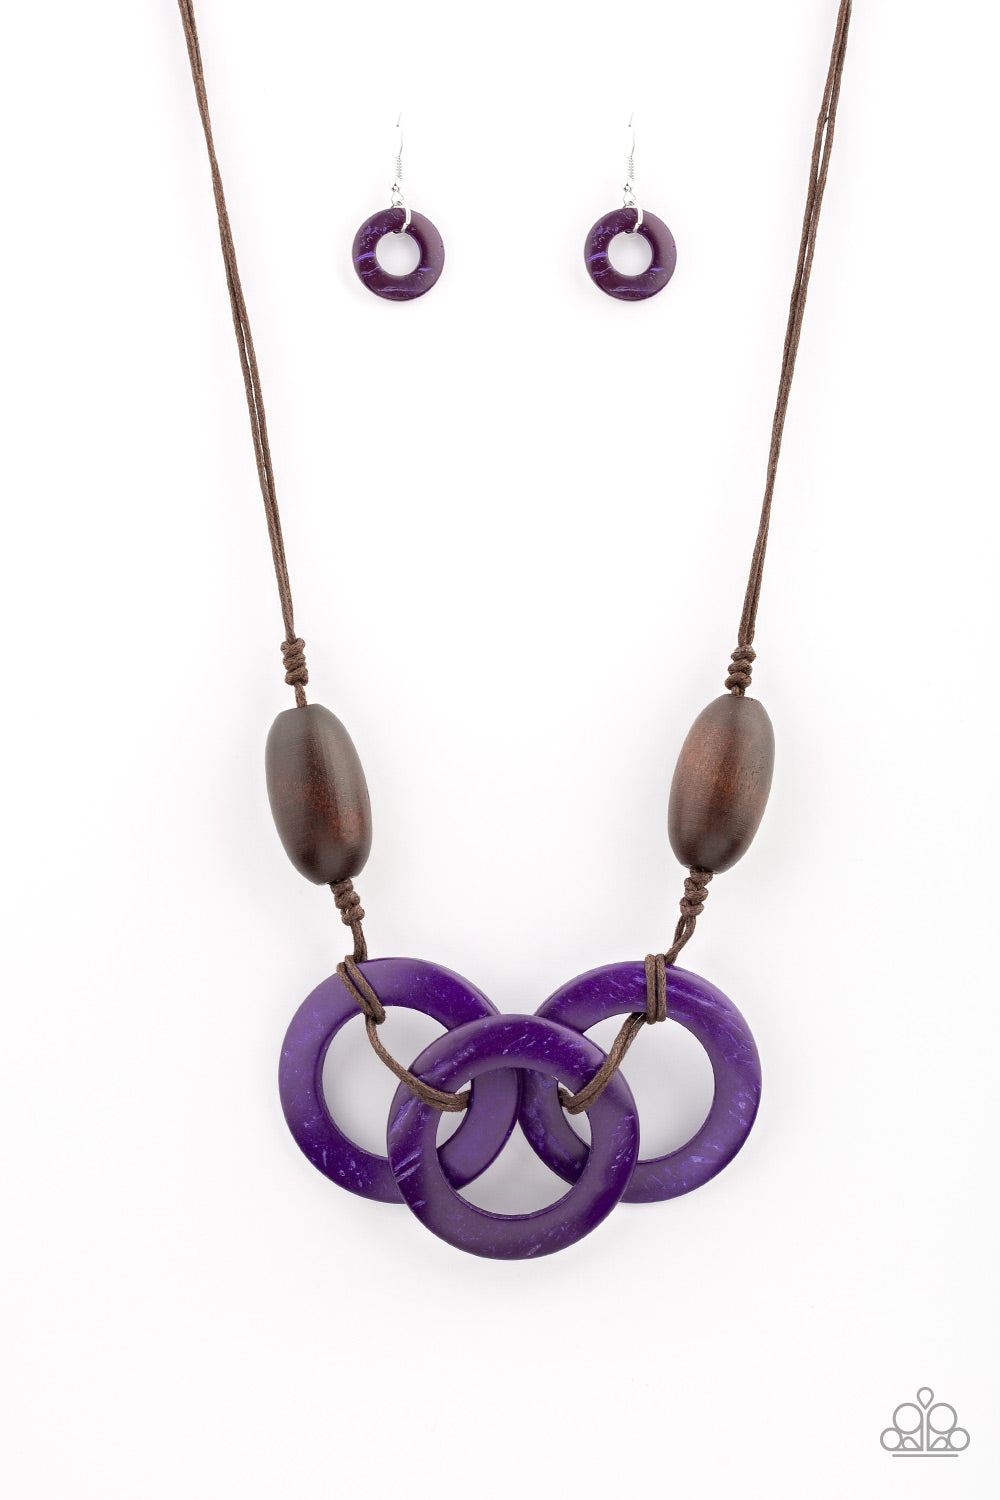 Paparazzi Accessories - Bahama Drama - Purple Necklace Set - JMJ Jewelry Collection